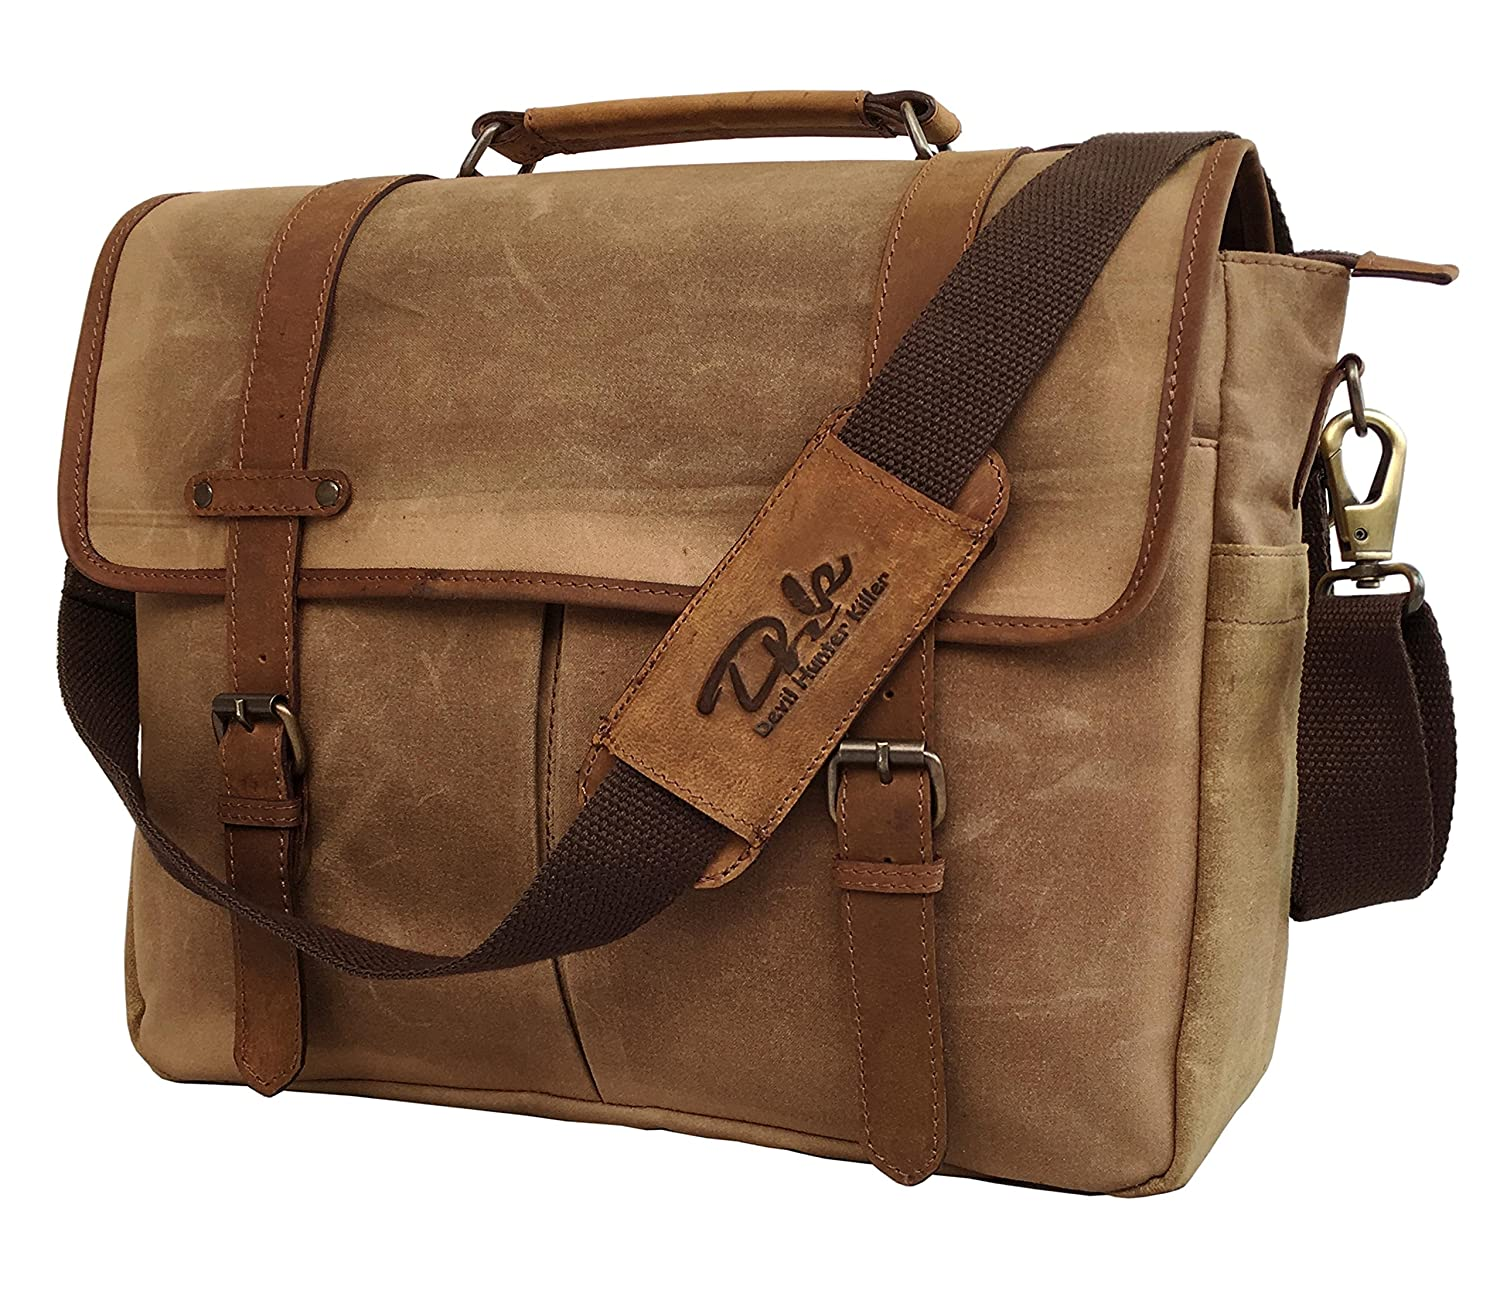 2088f7f651f Amazon.com  DHK Laptop Messenger Bag 17.6 Inch